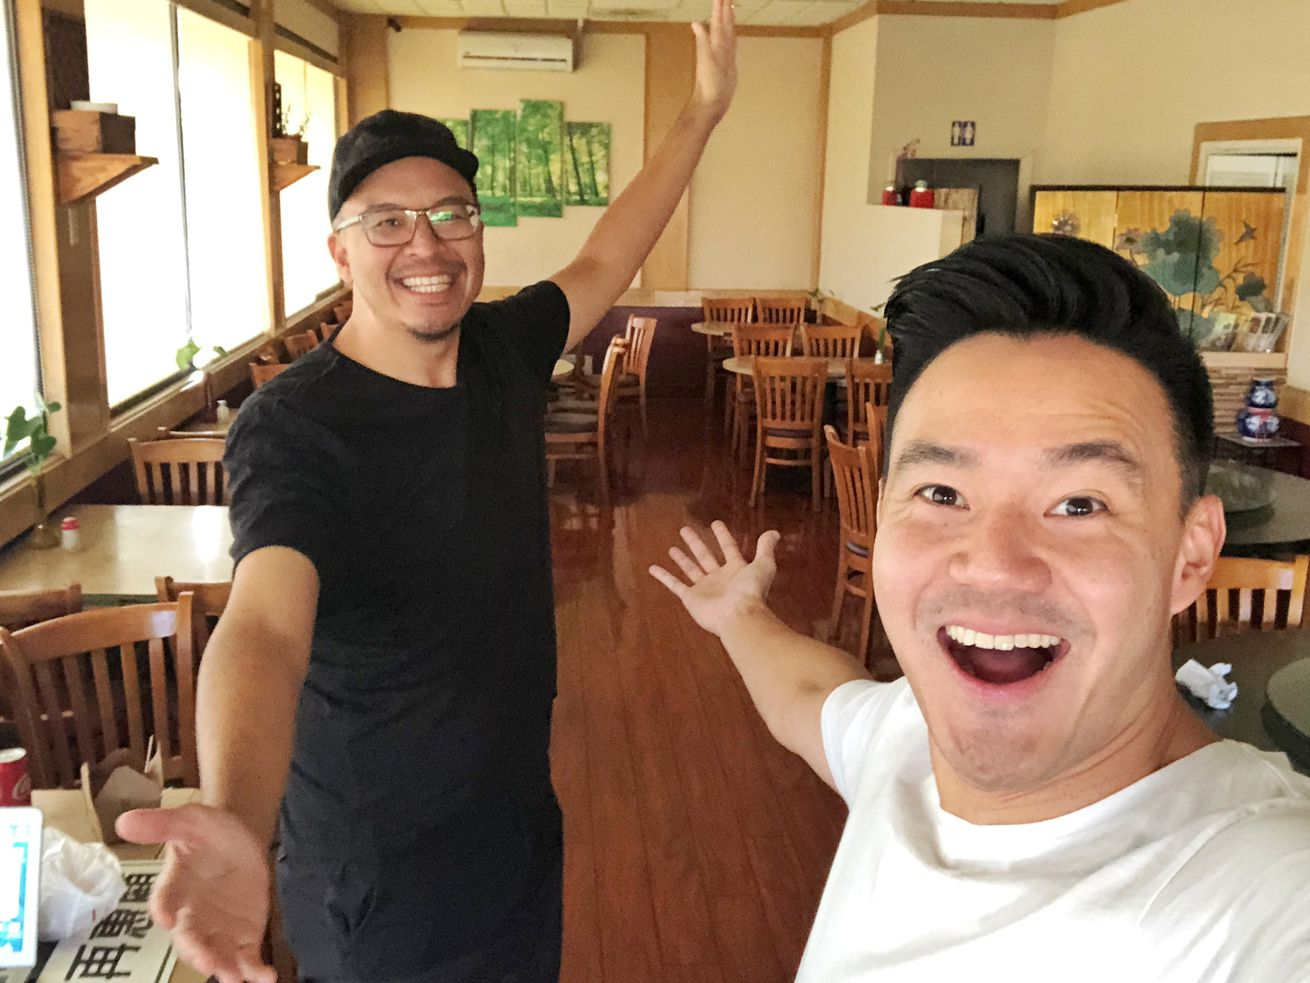 """Phil Wang (right), one half of <a class=""""ql-link"""" href=""""https://www.youtube.com/user/WongFuProductions"""" target=""""_blank"""">Wong Fu Productions</a>, along with business partner Eric Wang. Bopomofo Cafe<strong> </strong>opens mid-February"""